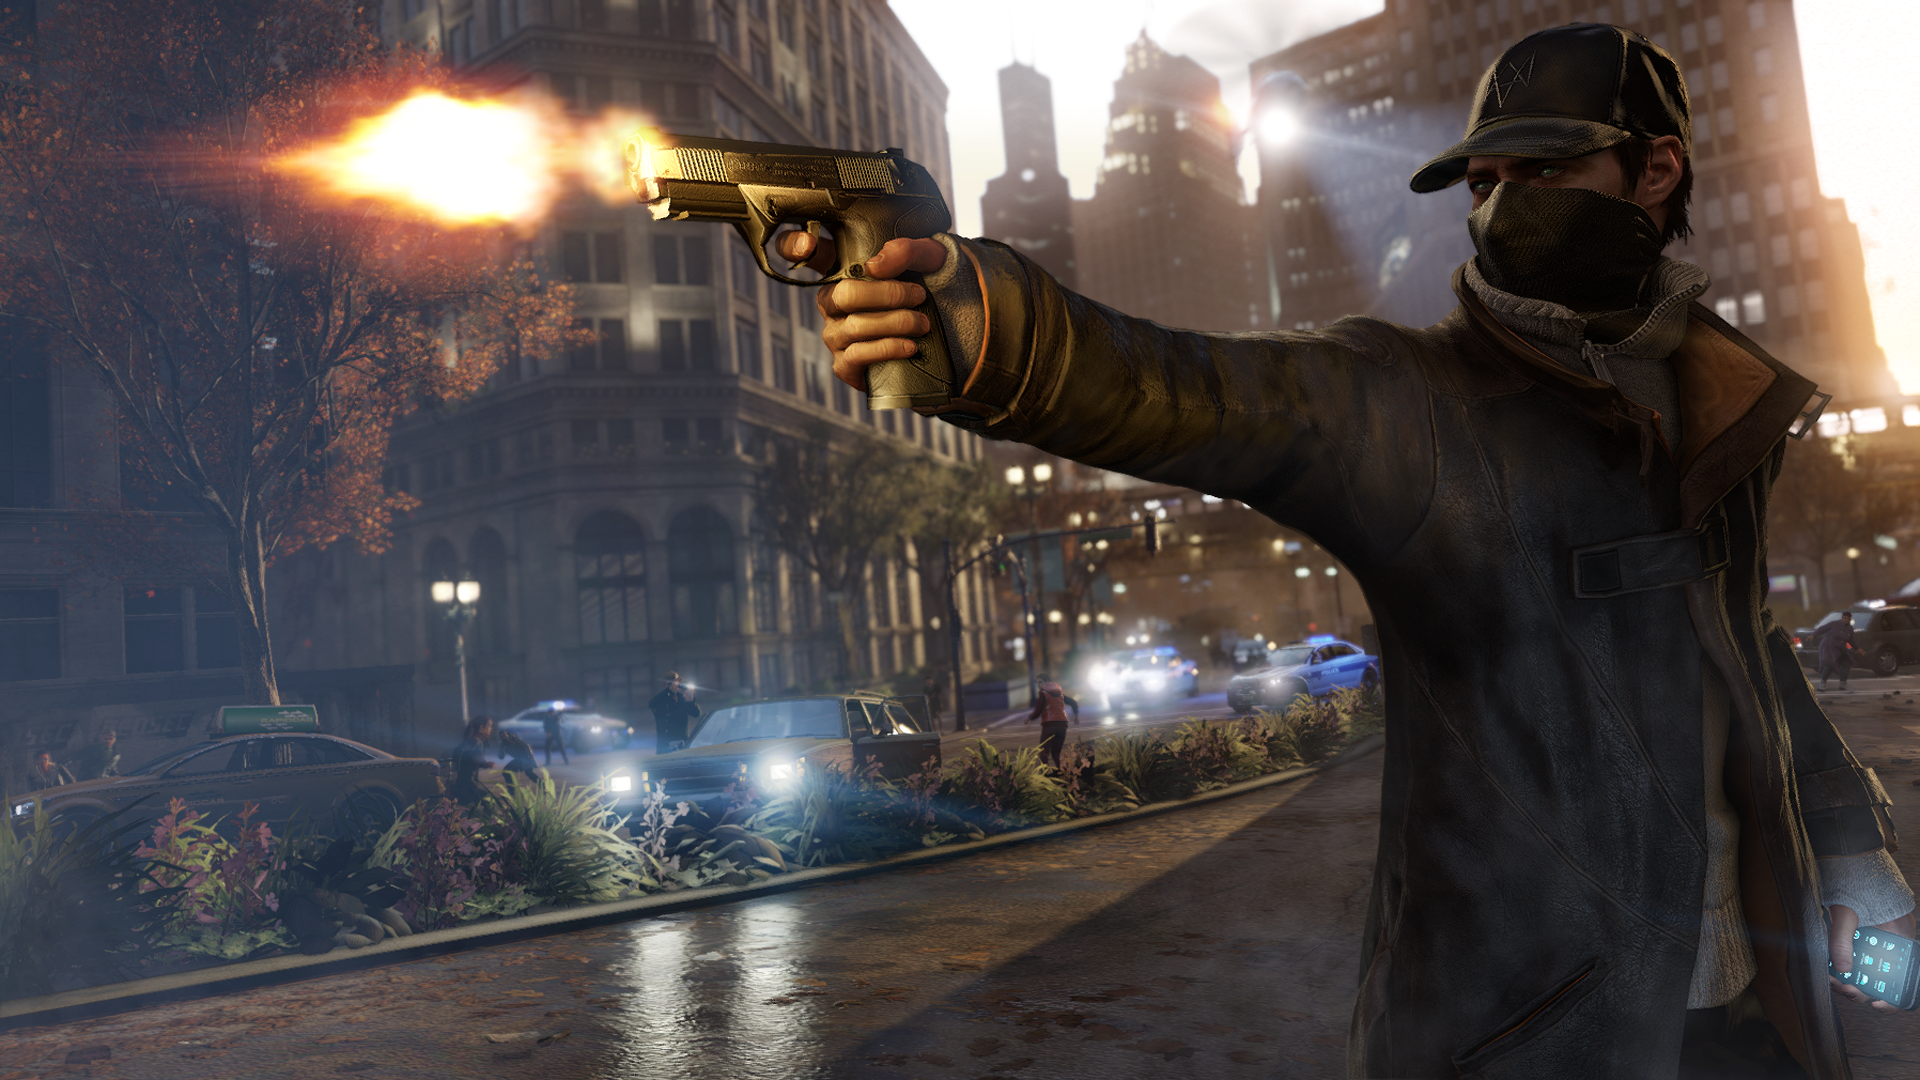 Watch Dogs 2 Wallpaper Download Free Beautiful: Watch Dogs Full HD Wallpaper And Background Image